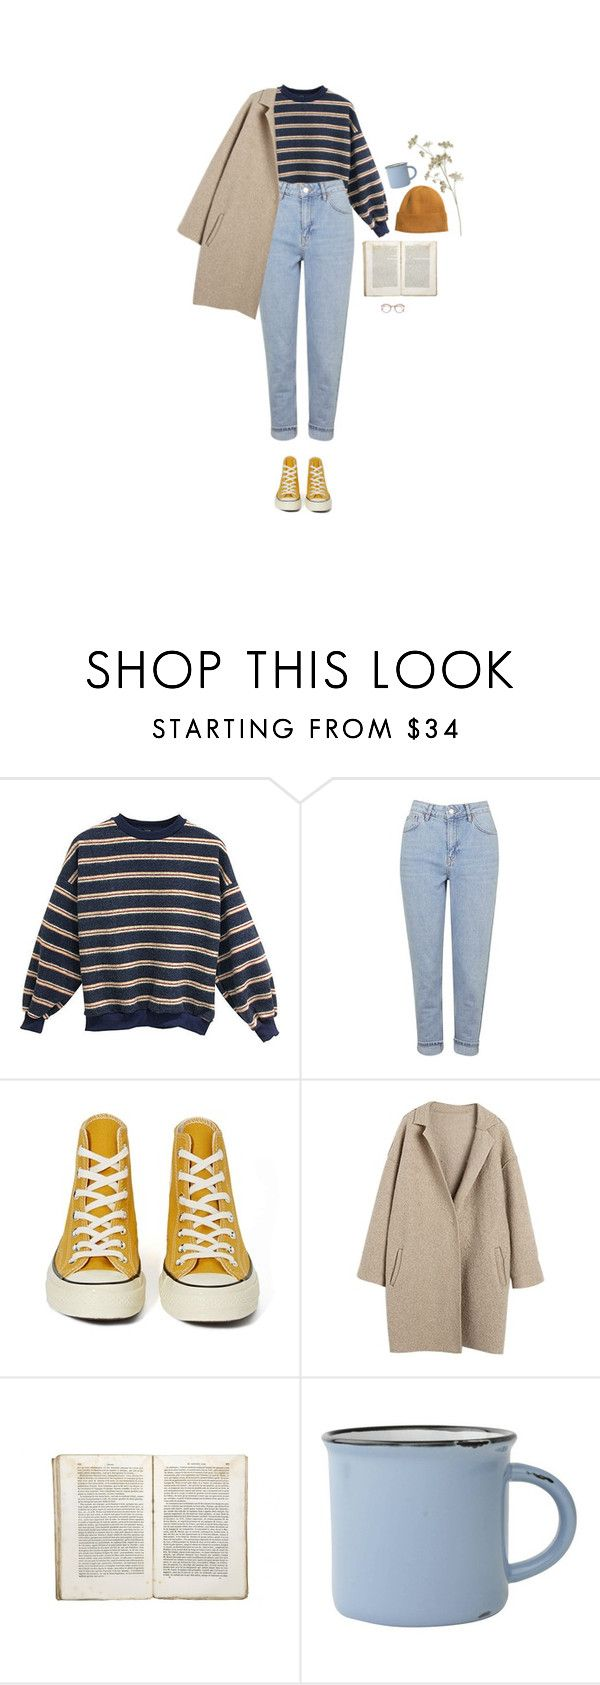 """""""in the clouds for days"""" by hetasdfghjkl ❤ liked on Polyvore featuring Topshop, Converse, Jayson Home, canvas and H&M"""